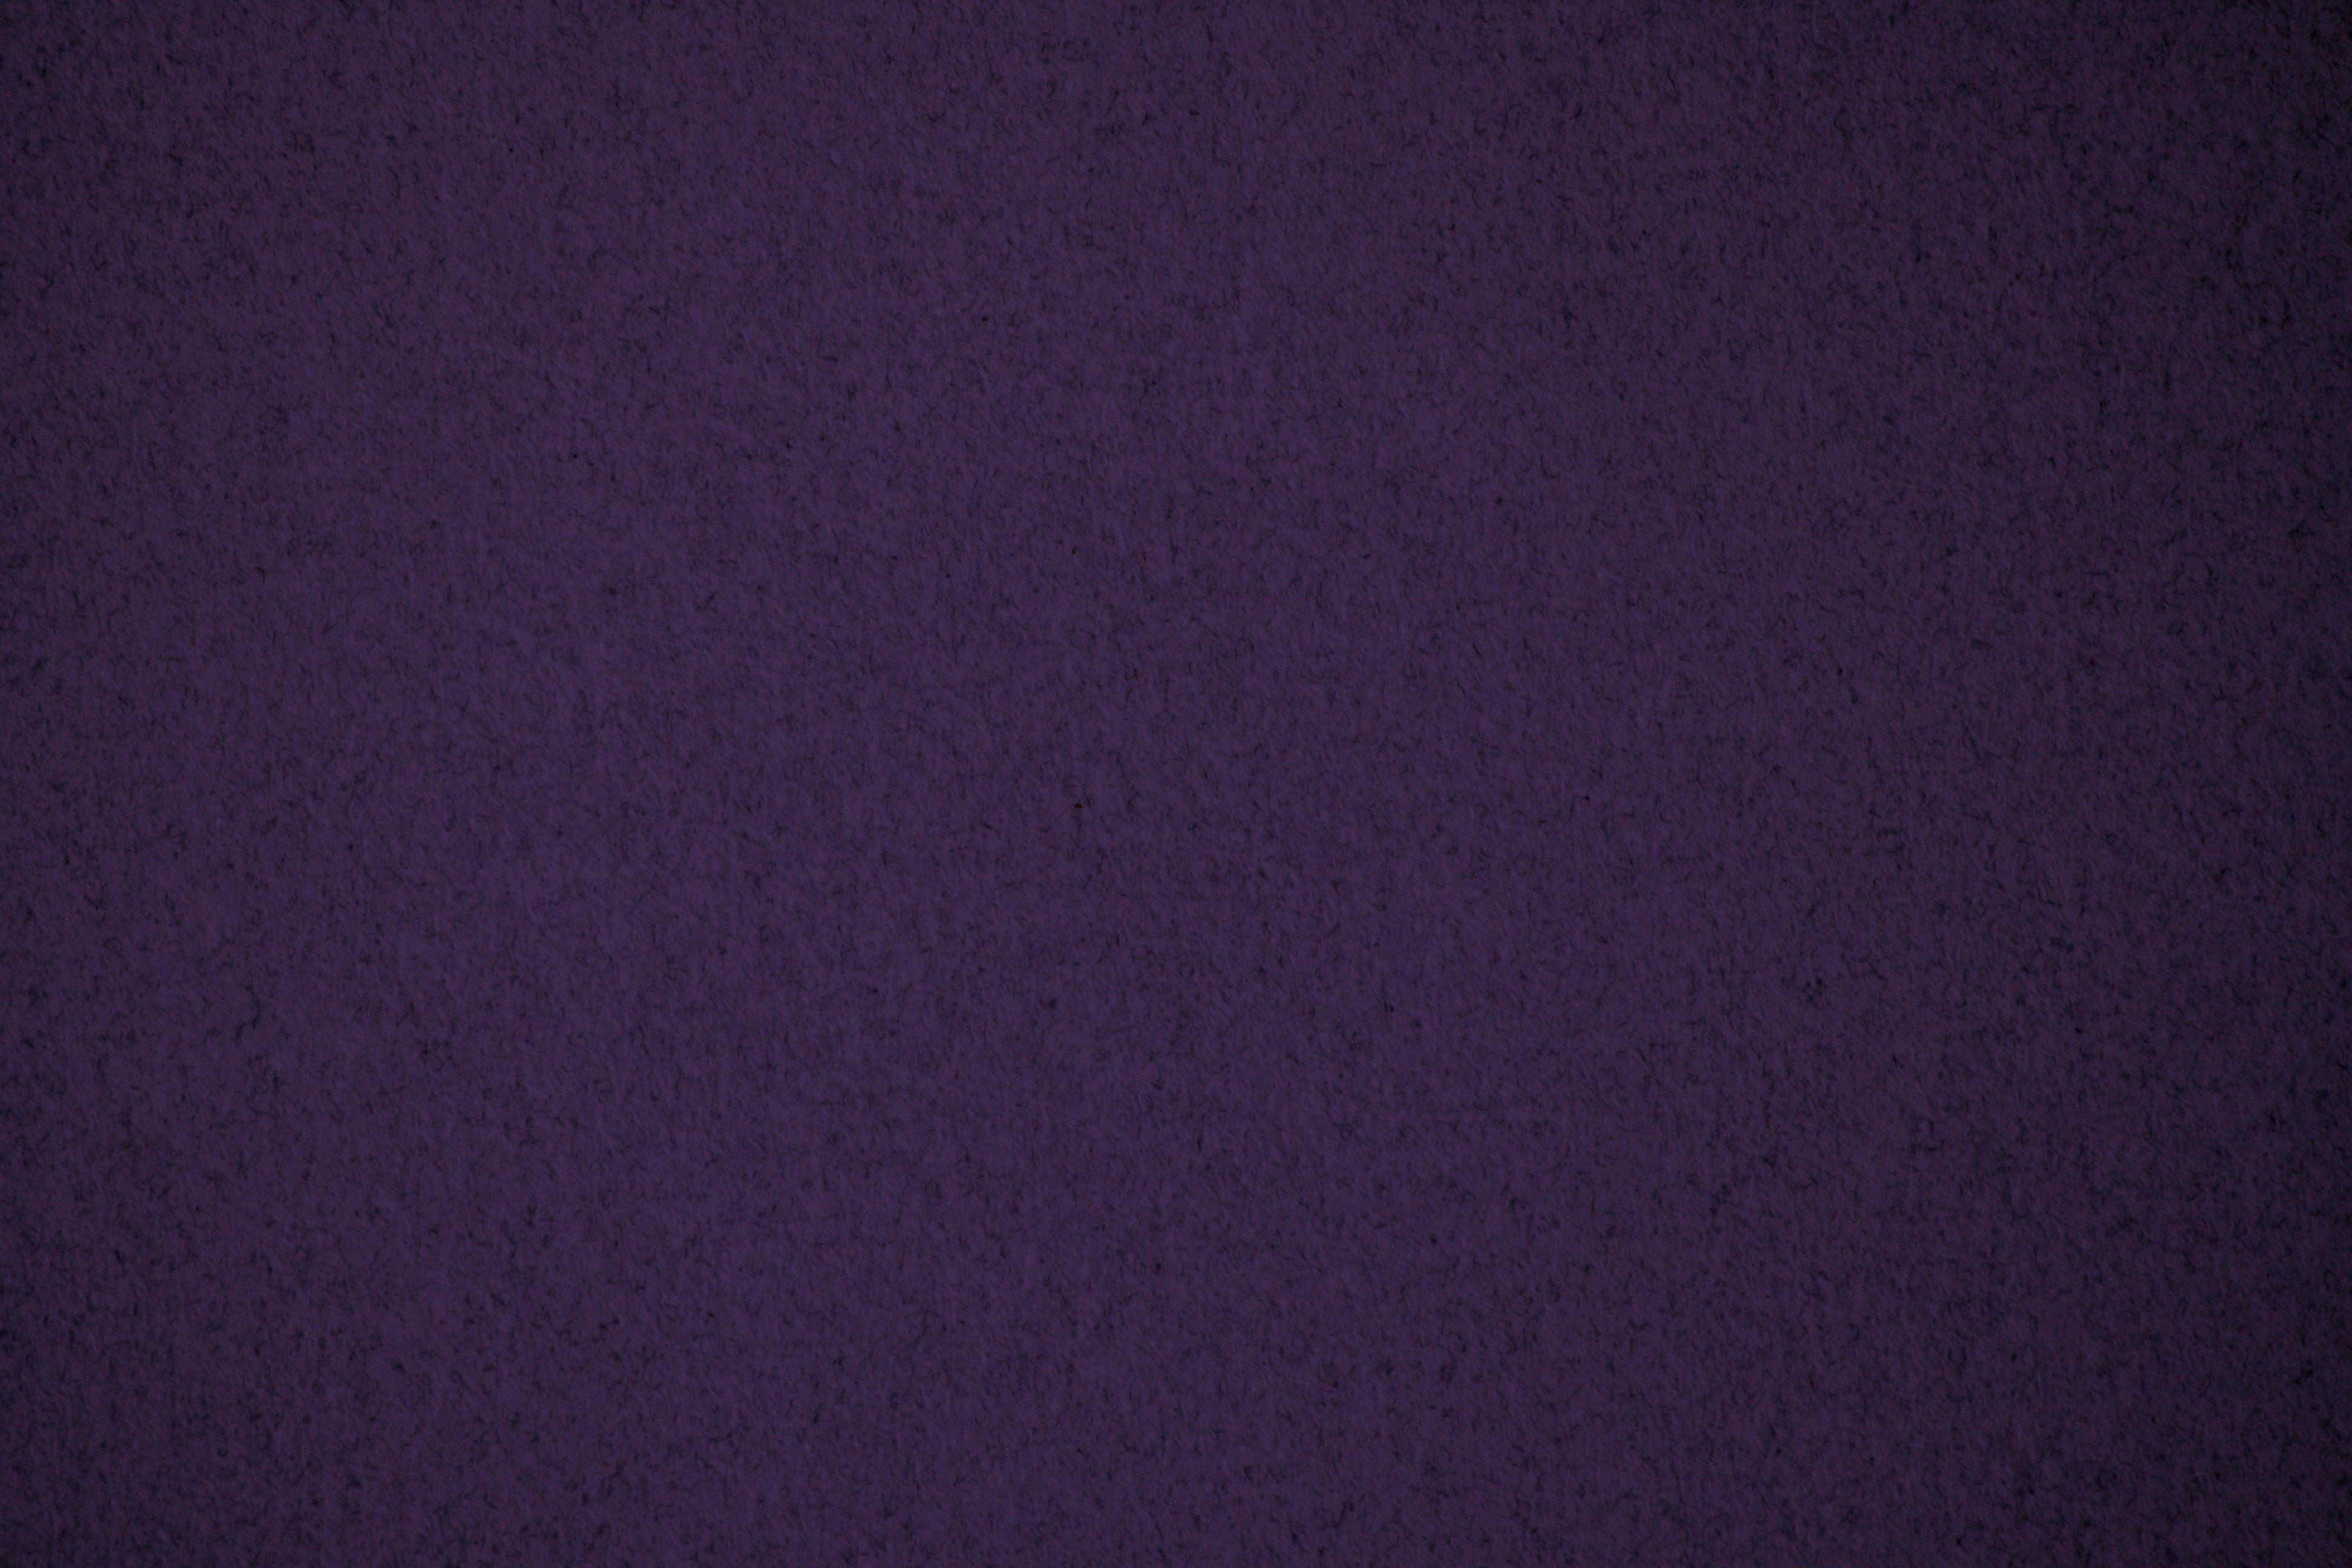 Dark Purple Speckled Paper Texture Picture | Free Photograph ...